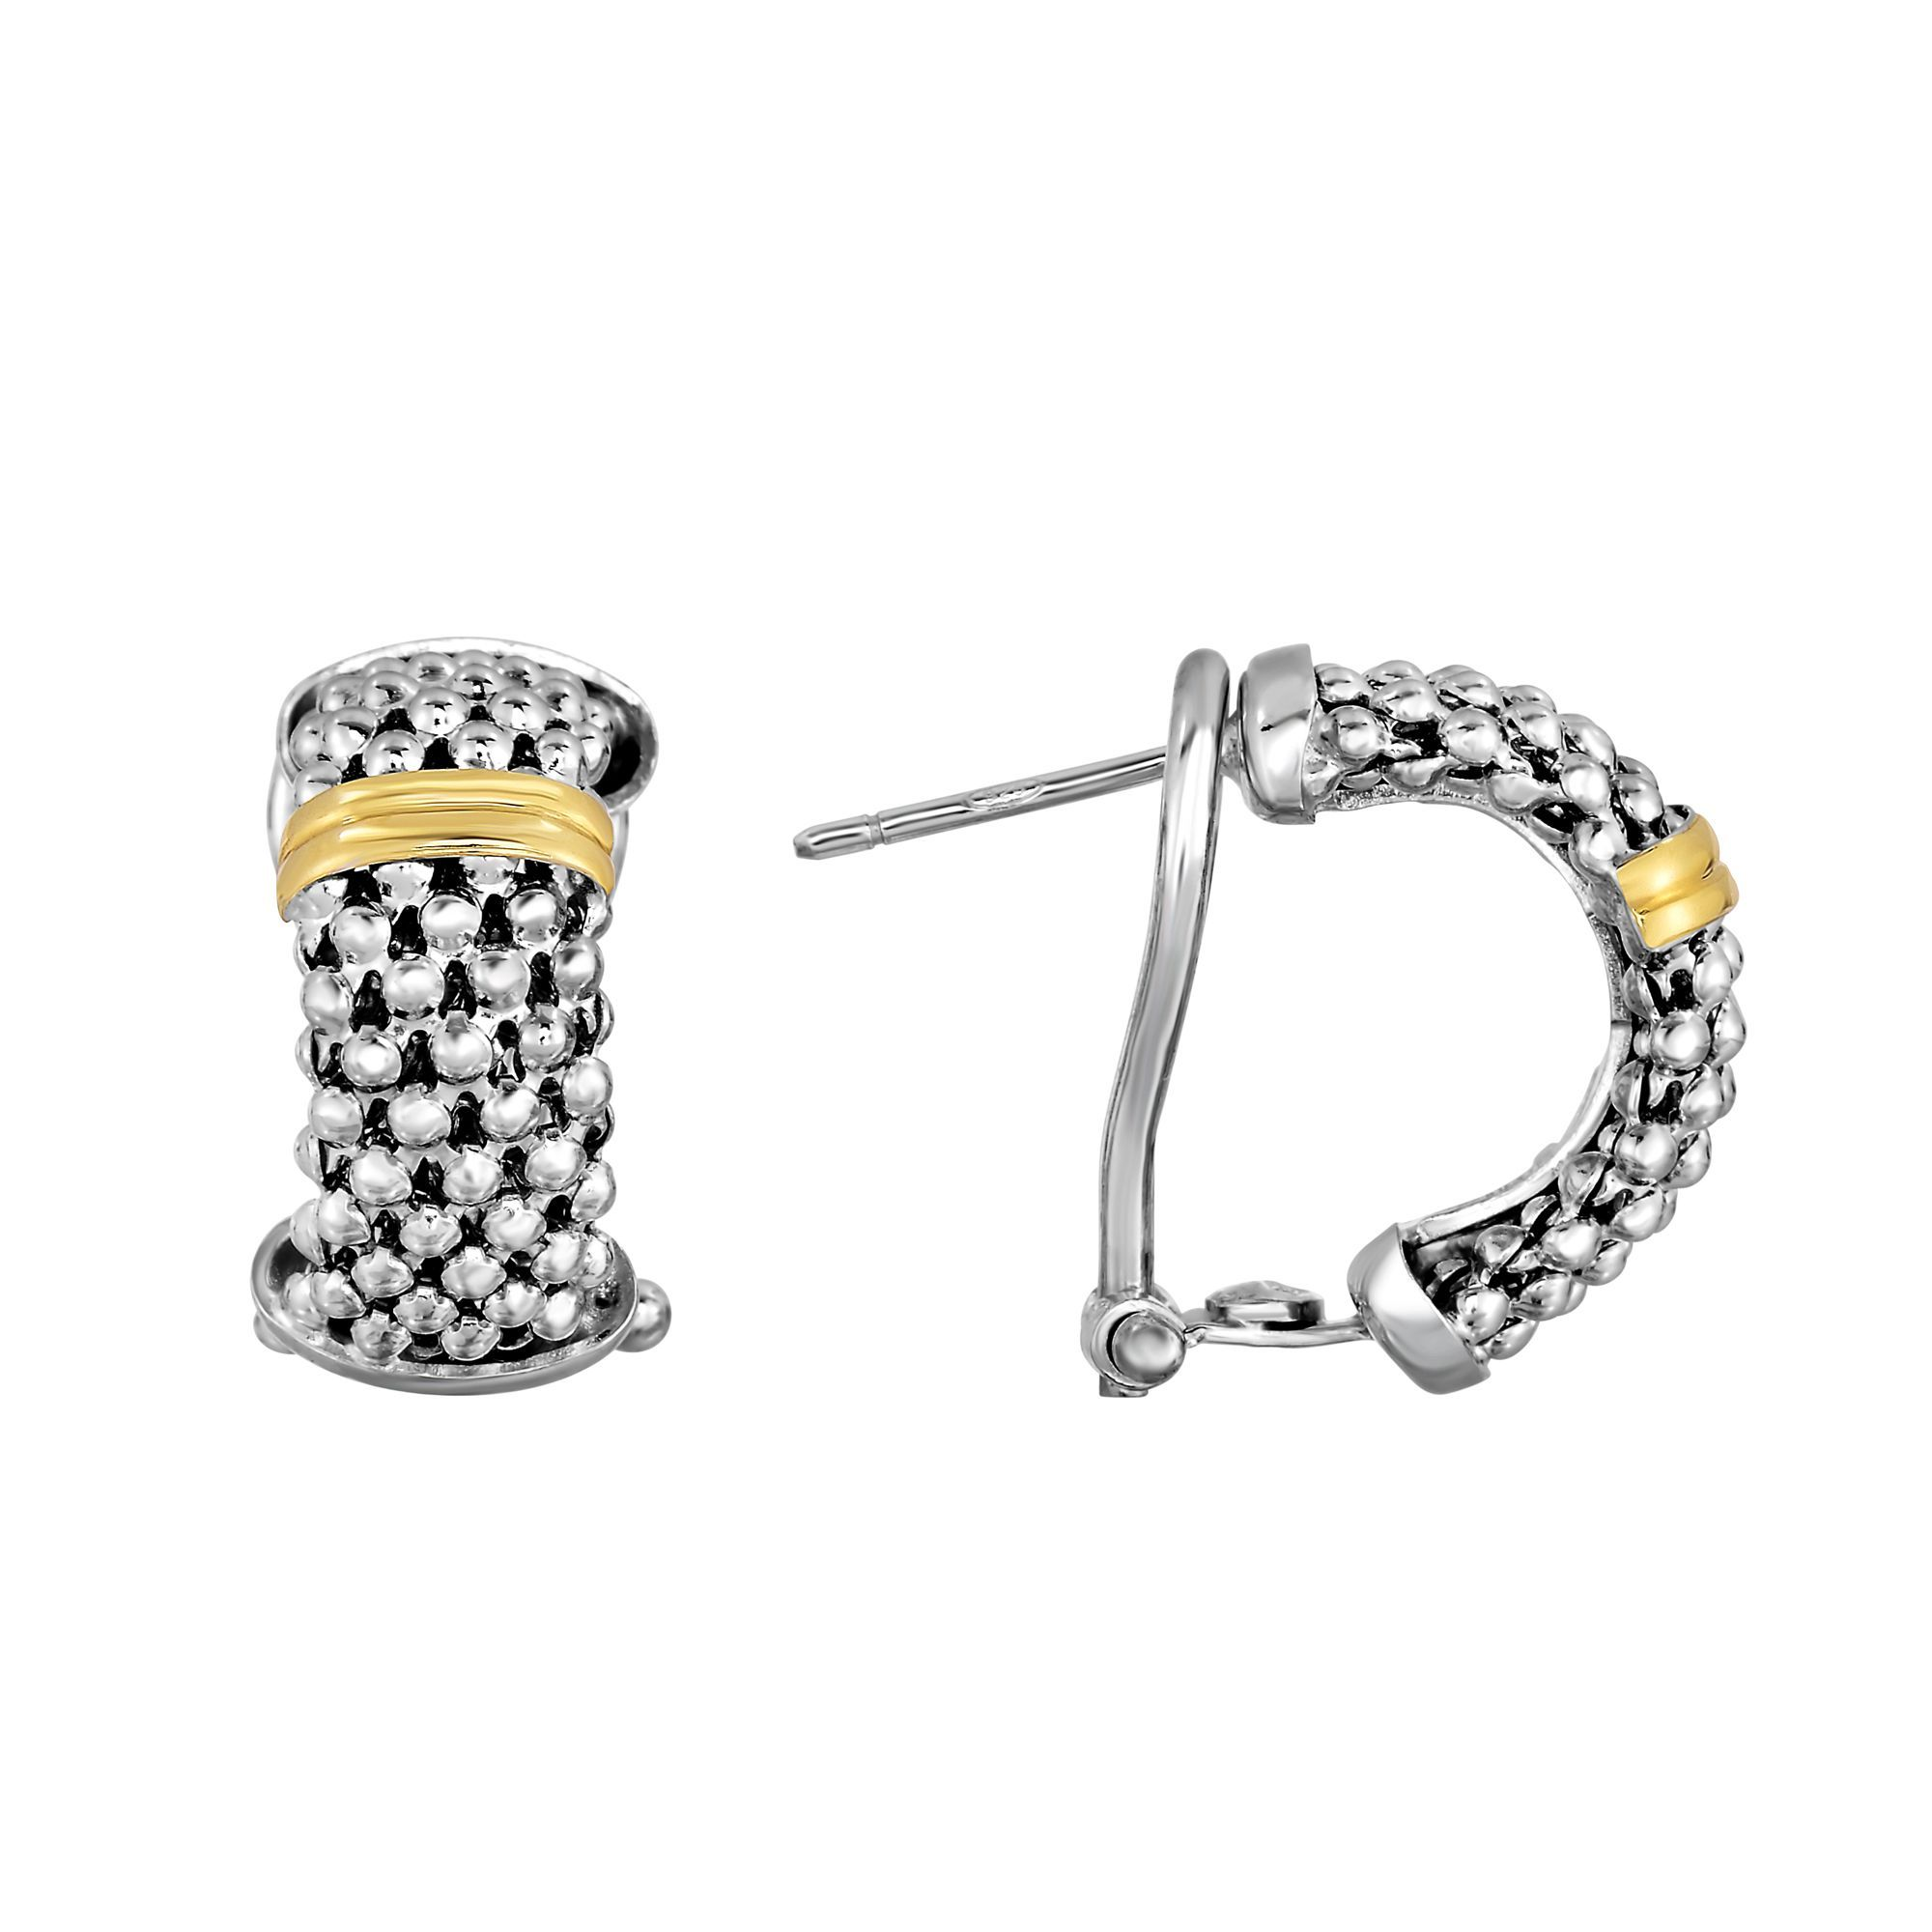 18kt Yellow Silver With Rhofium Finish 18x5mm Popc Orn Textured Half Moon Post Earring Omega Bac K Clasp Sile744